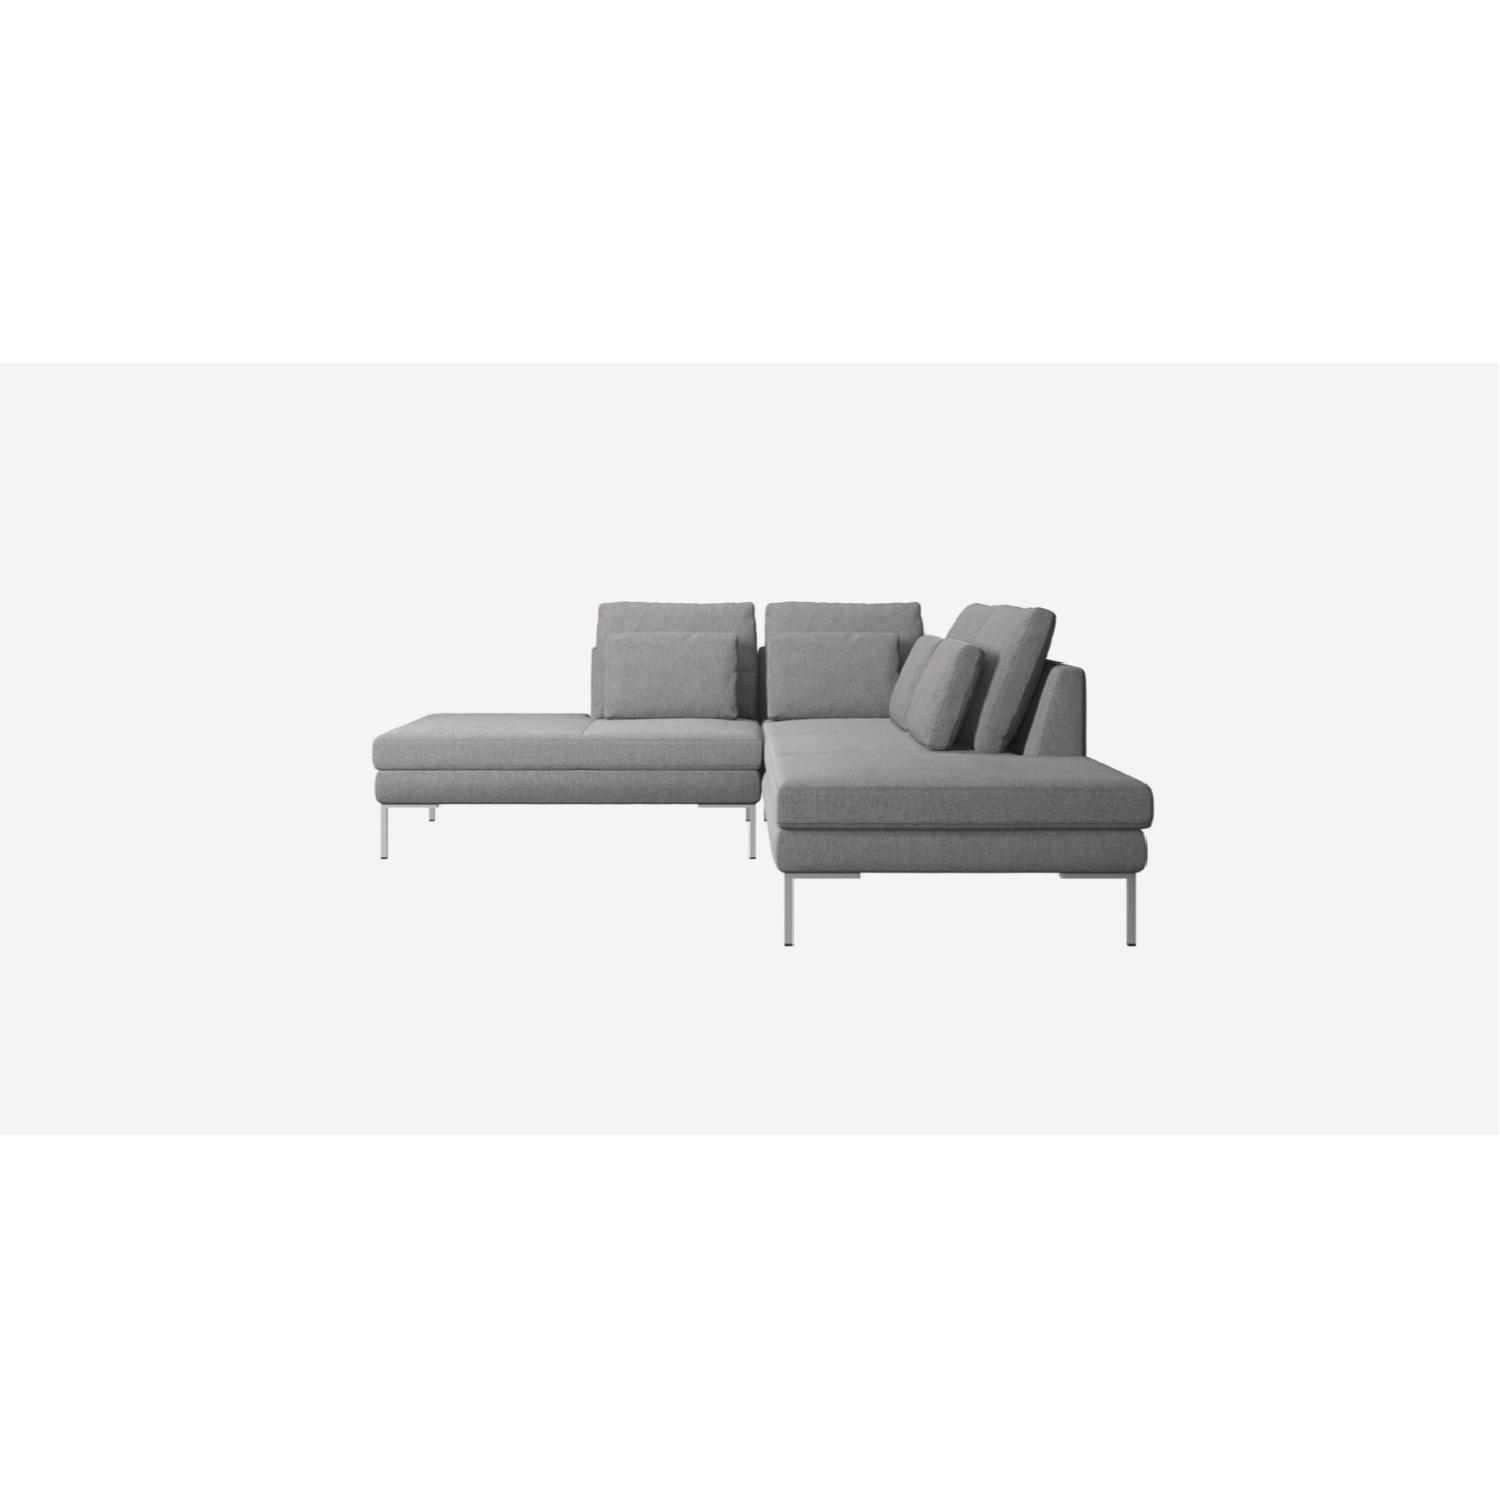 Awesome Boconcept Chaise Petite Set Grandes Unemploymentrelief Wooden Chair Designs For Living Room Unemploymentrelieforg